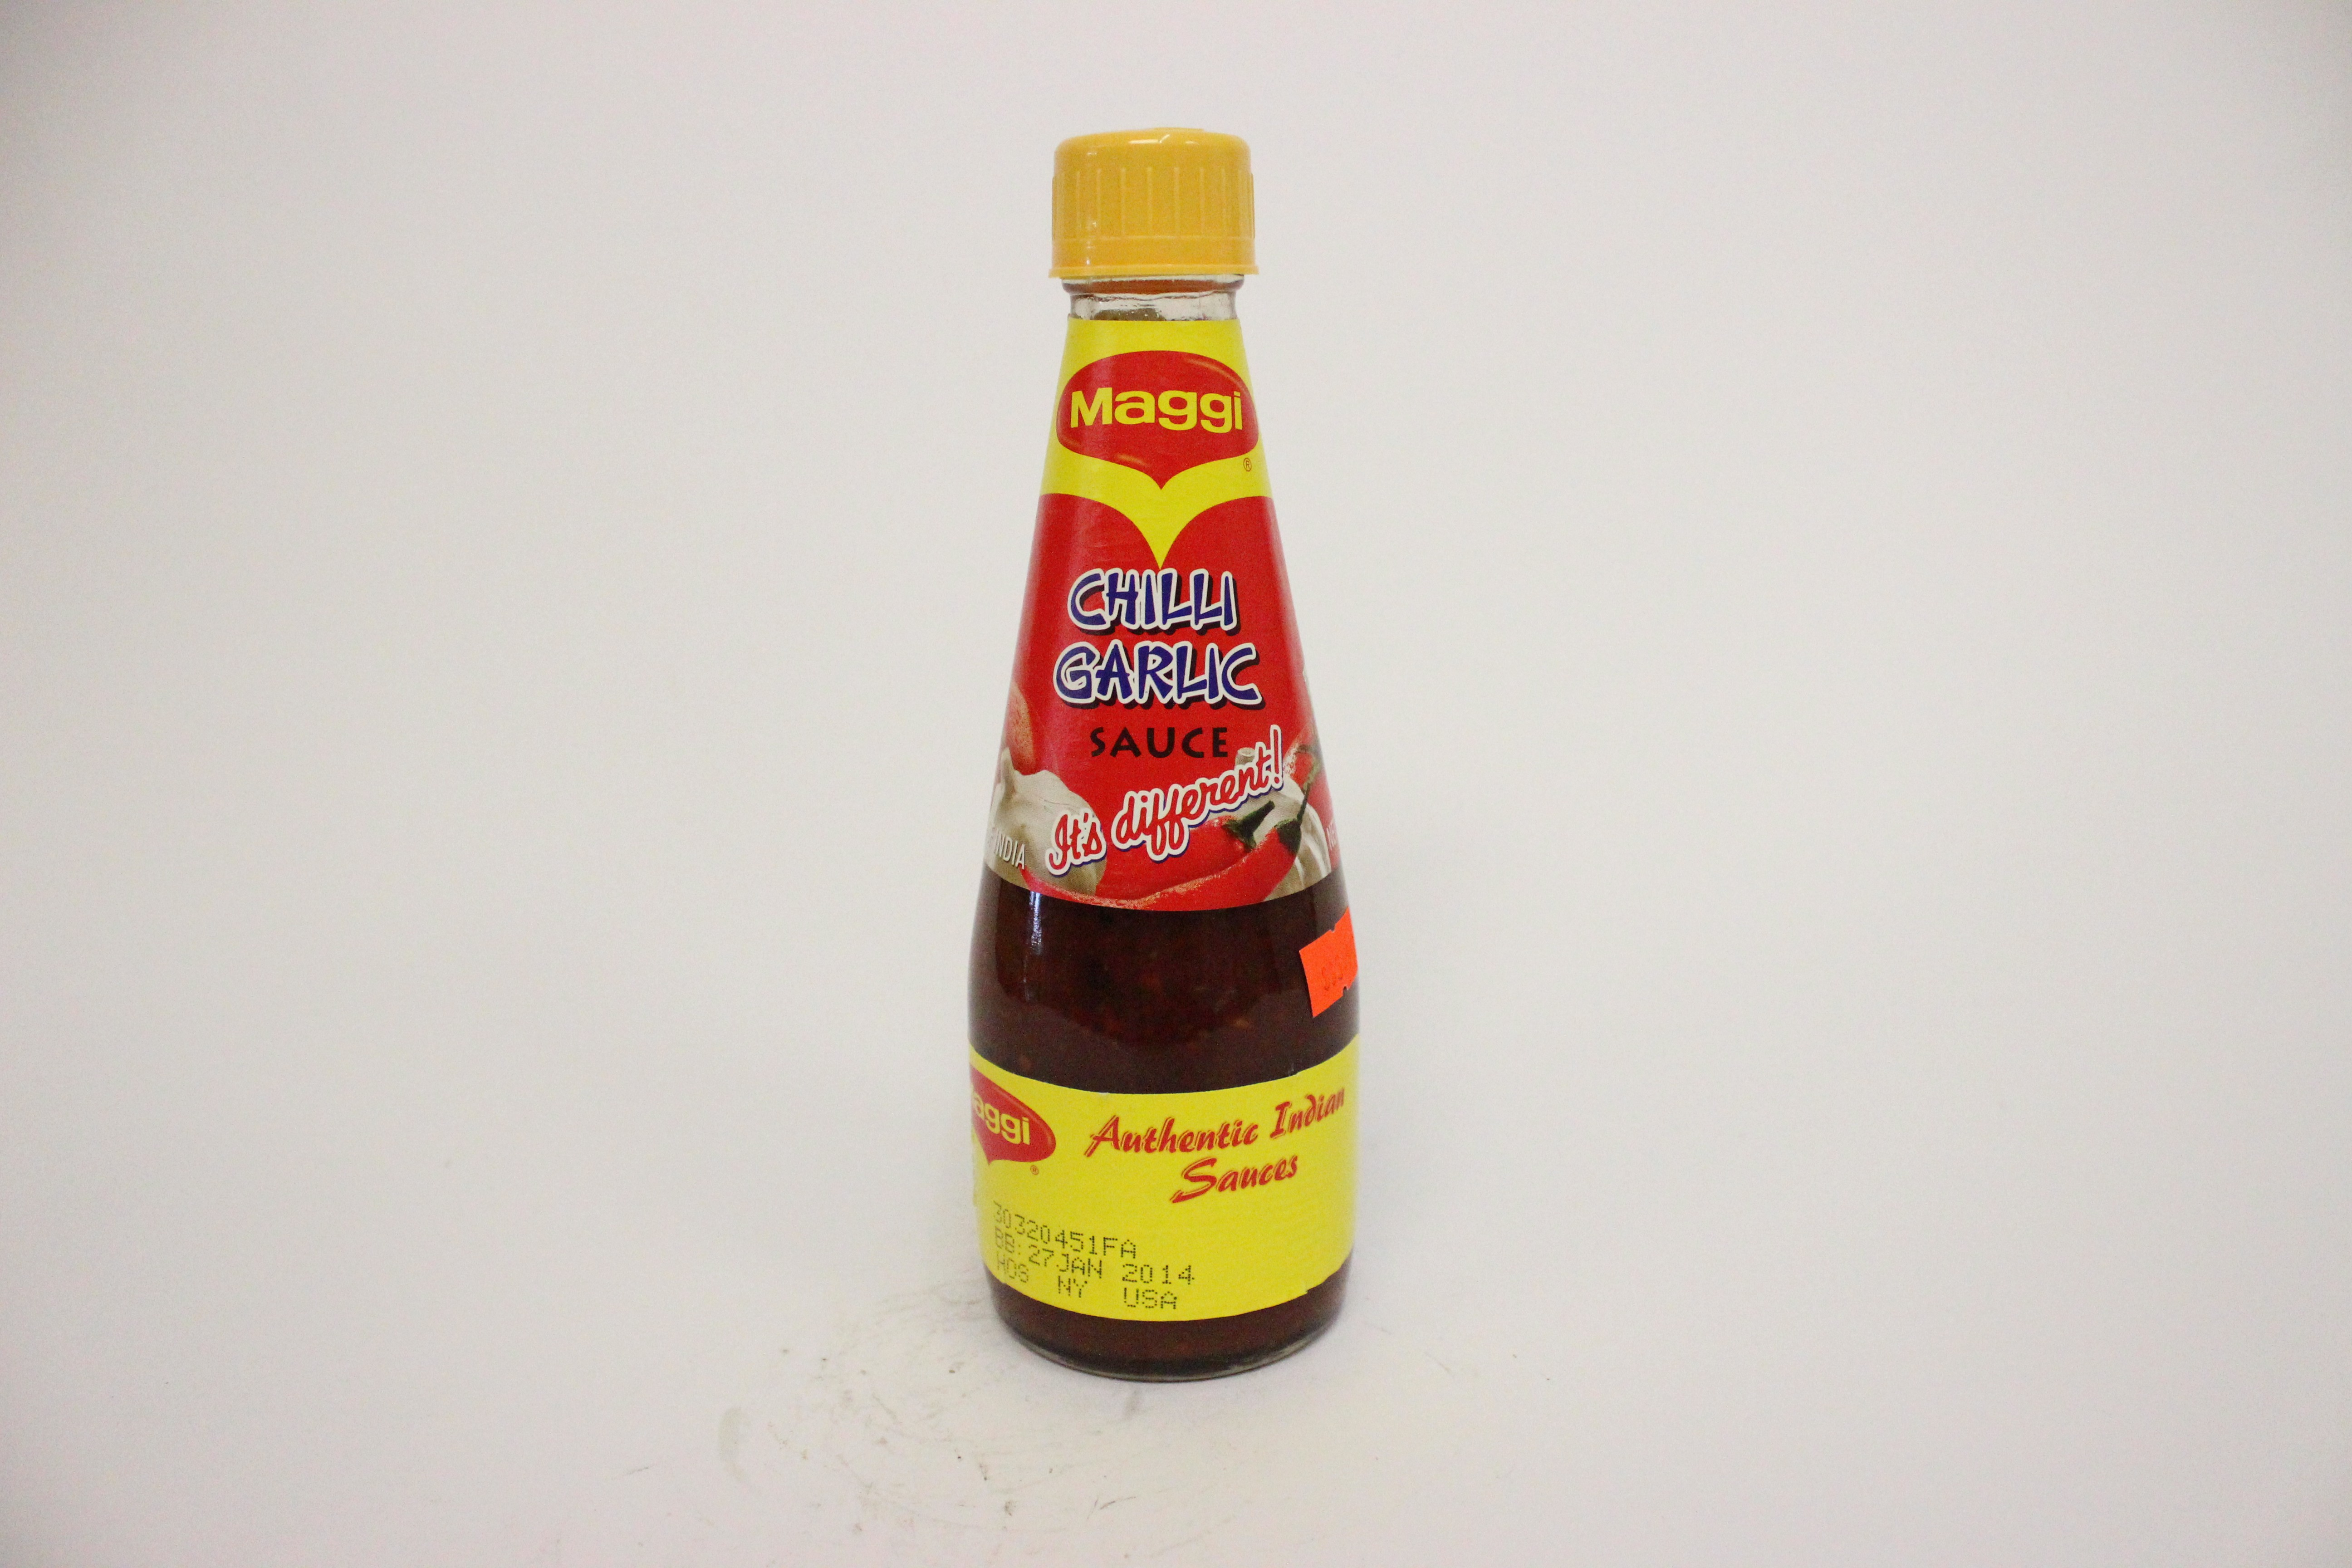 Maggi Chilli Garlic Sauce 14 oz